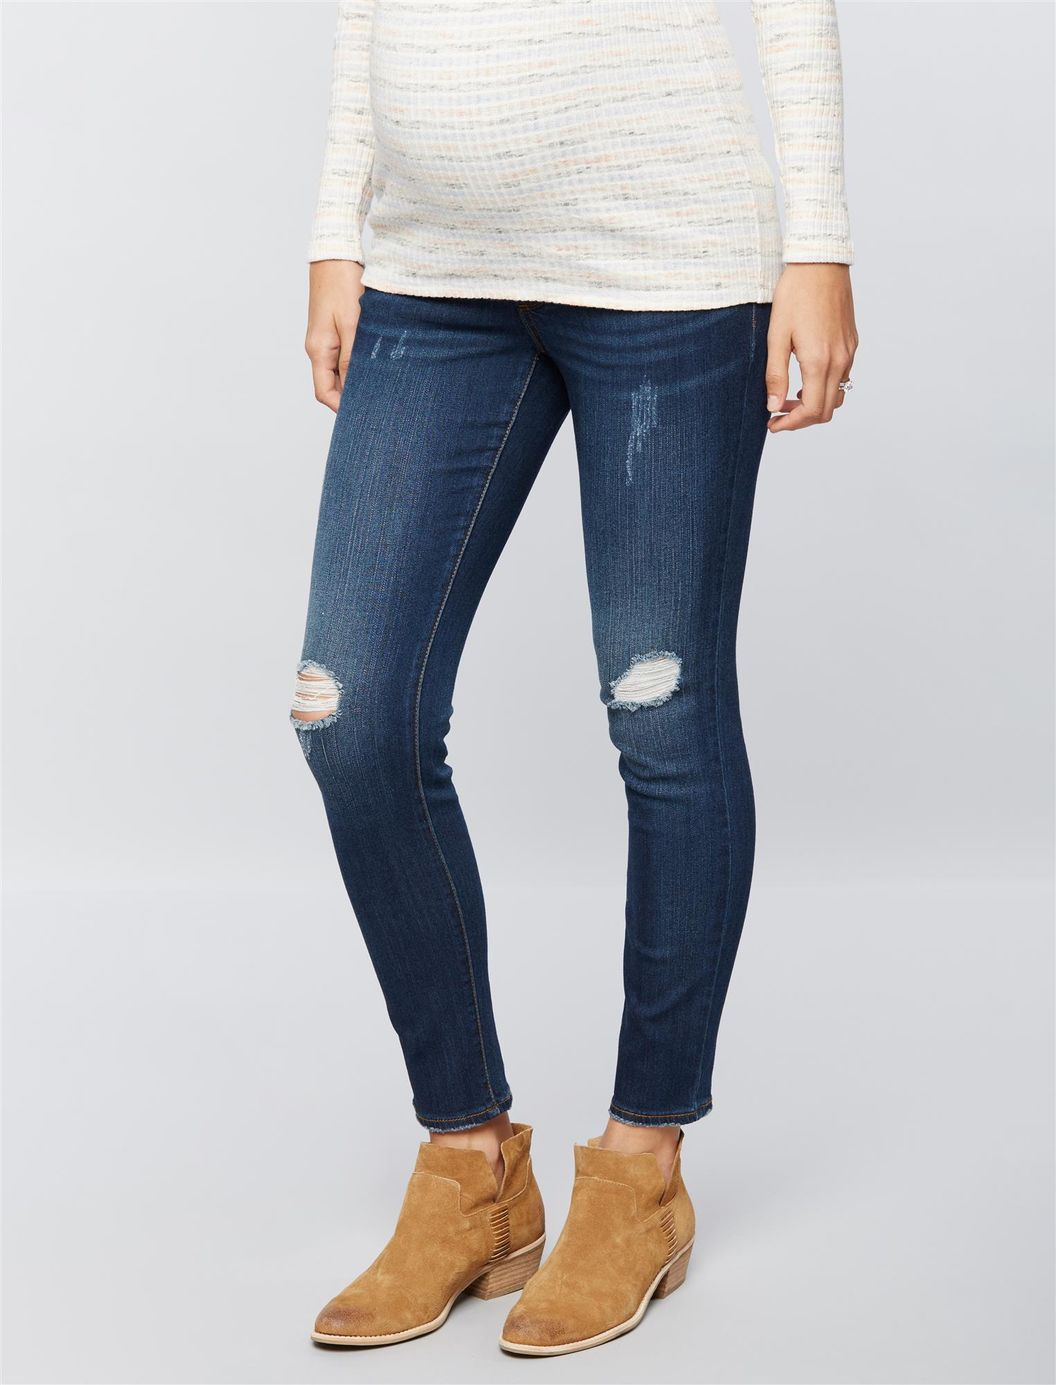 Maternity staples for fall: Luxe Essentials Maternity Jeggings | A Pea in the Pod